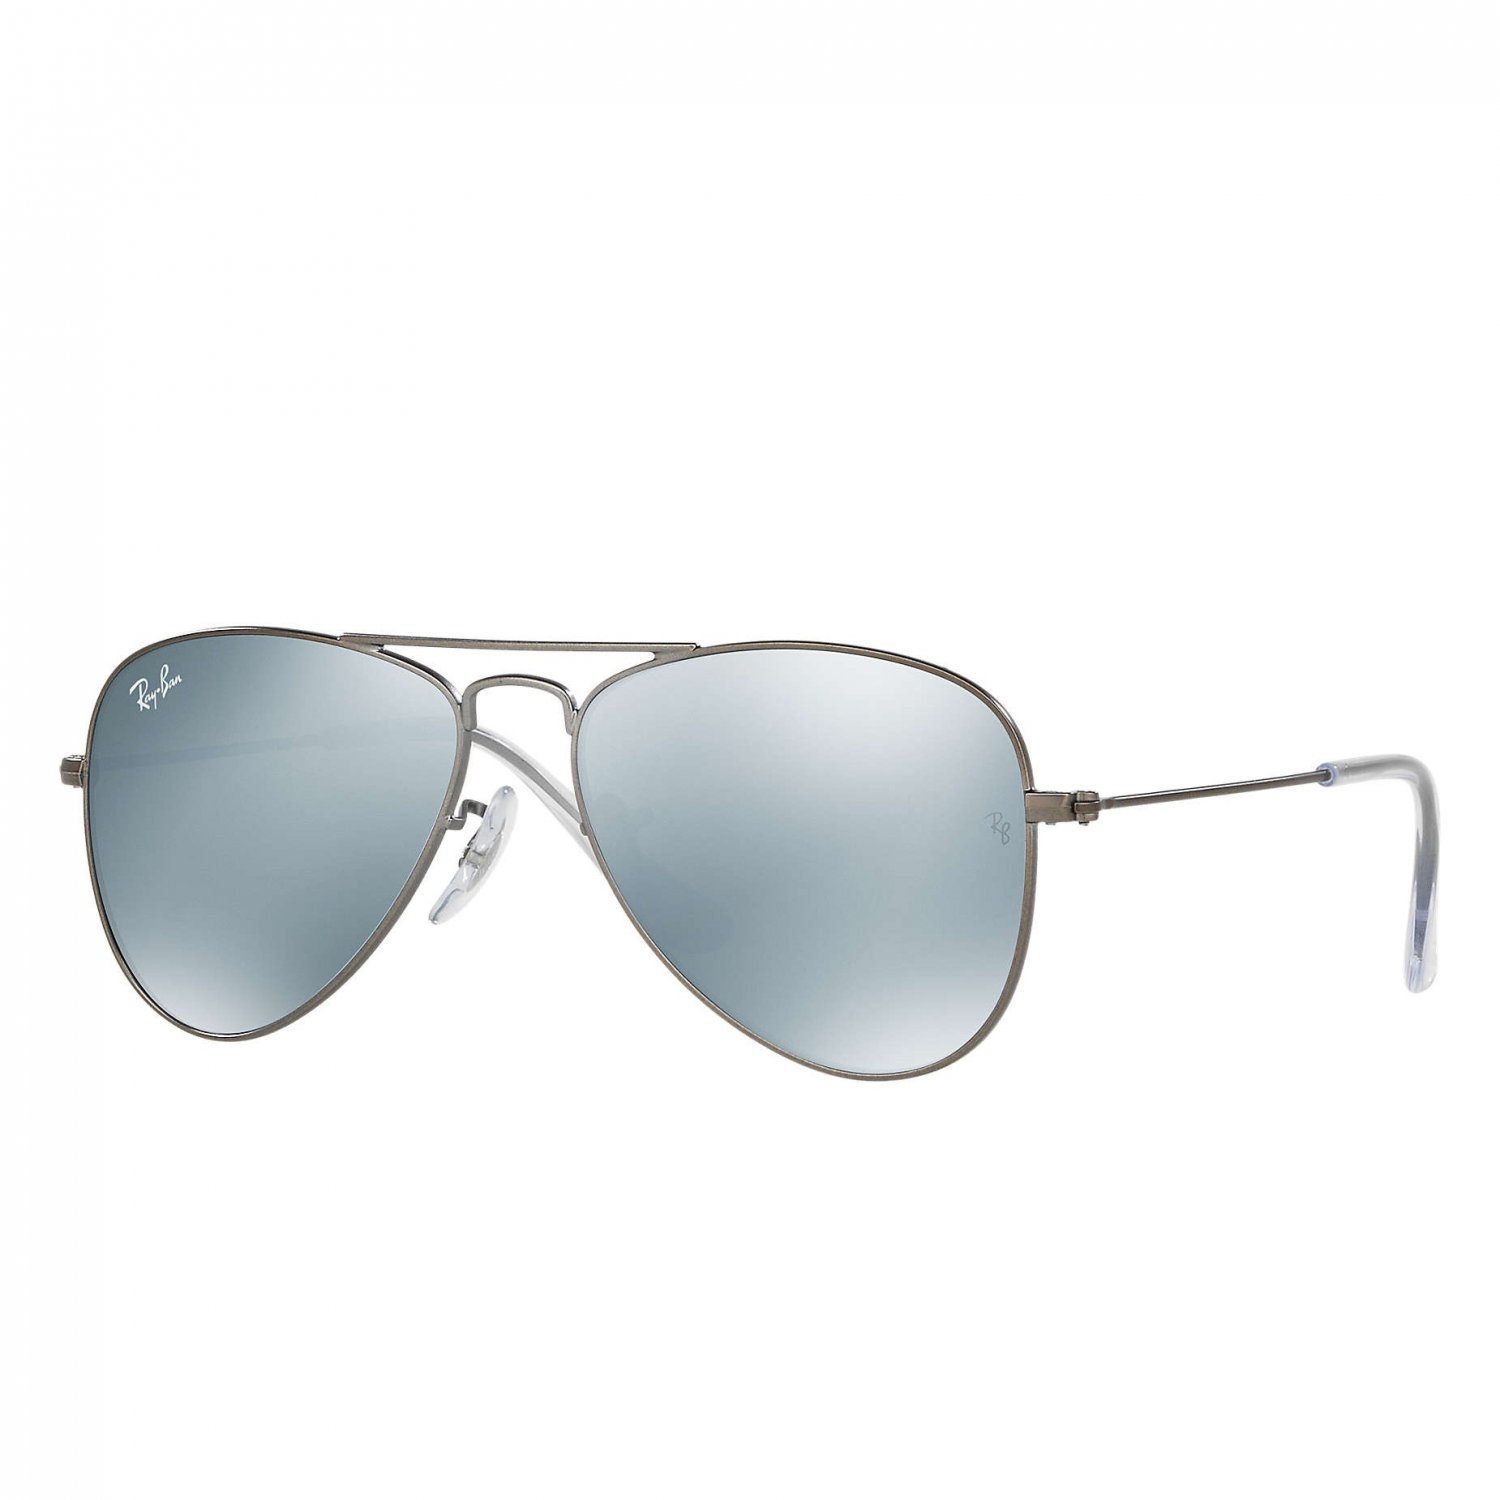 Ray-Ban Jr Aviator Sunglasses - Matte Gunmetal/Mirror Grey